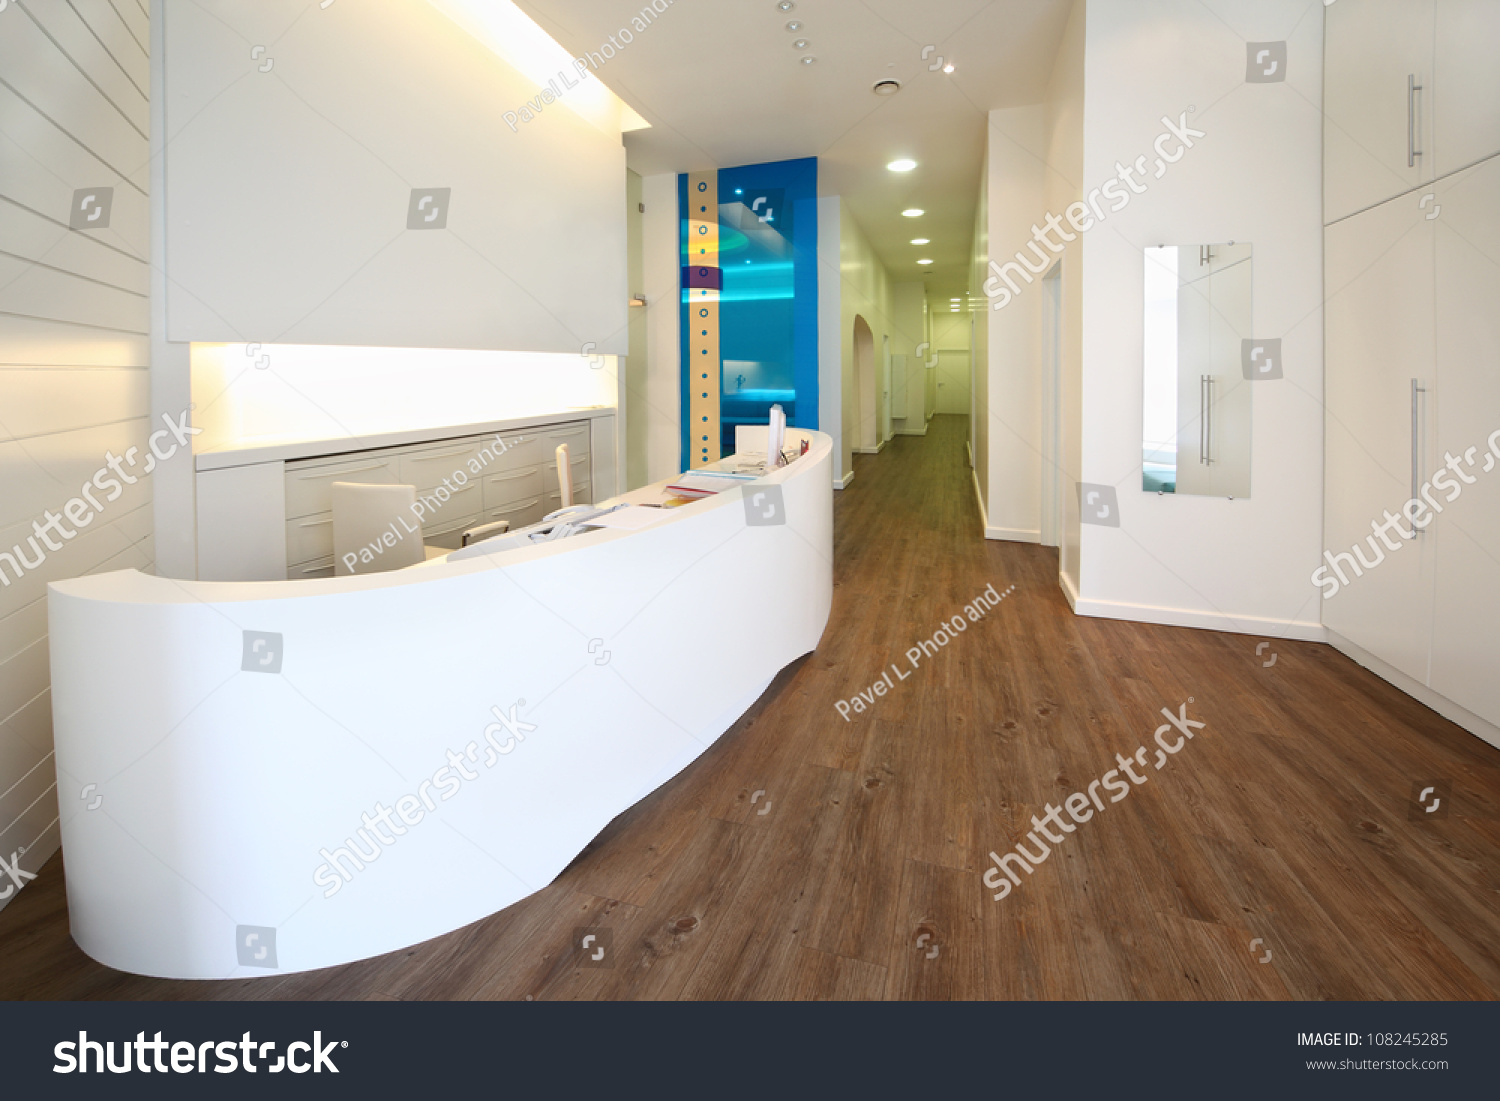 lit reception area dental clinic empty stock photo 108245285